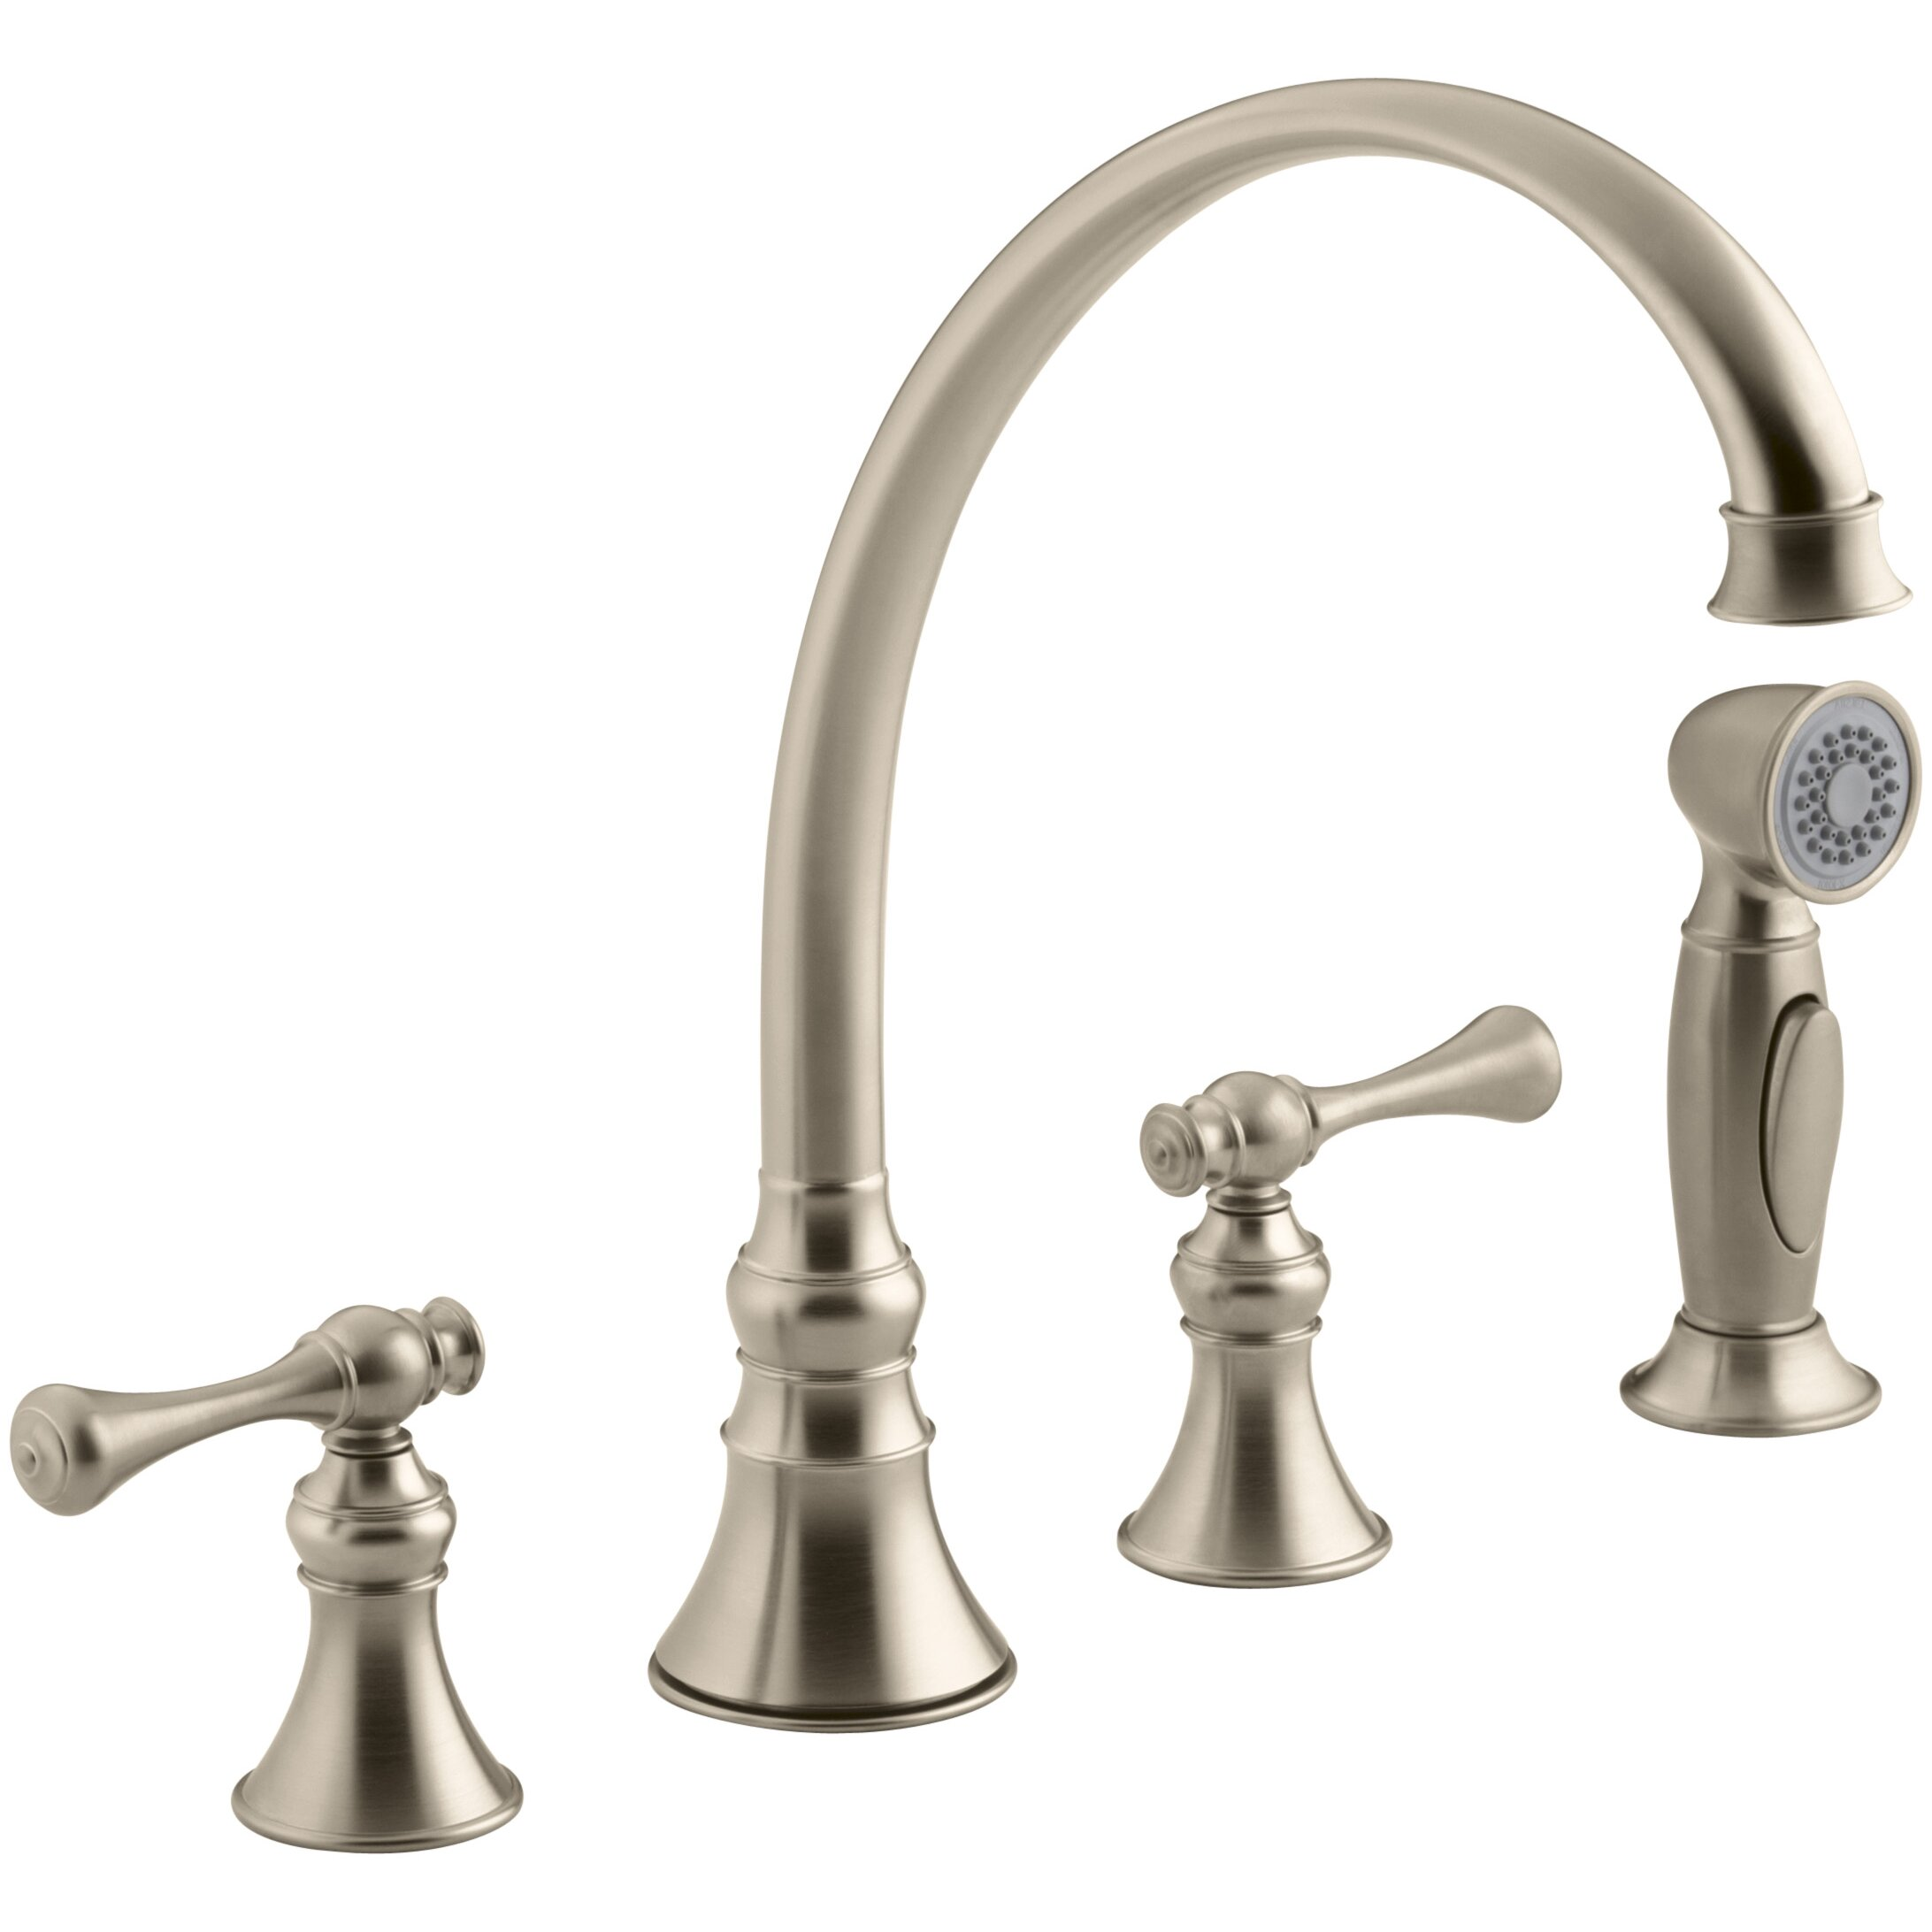 kohler revival 4 hole kitchen sink faucet with 9 3 16 spout matching